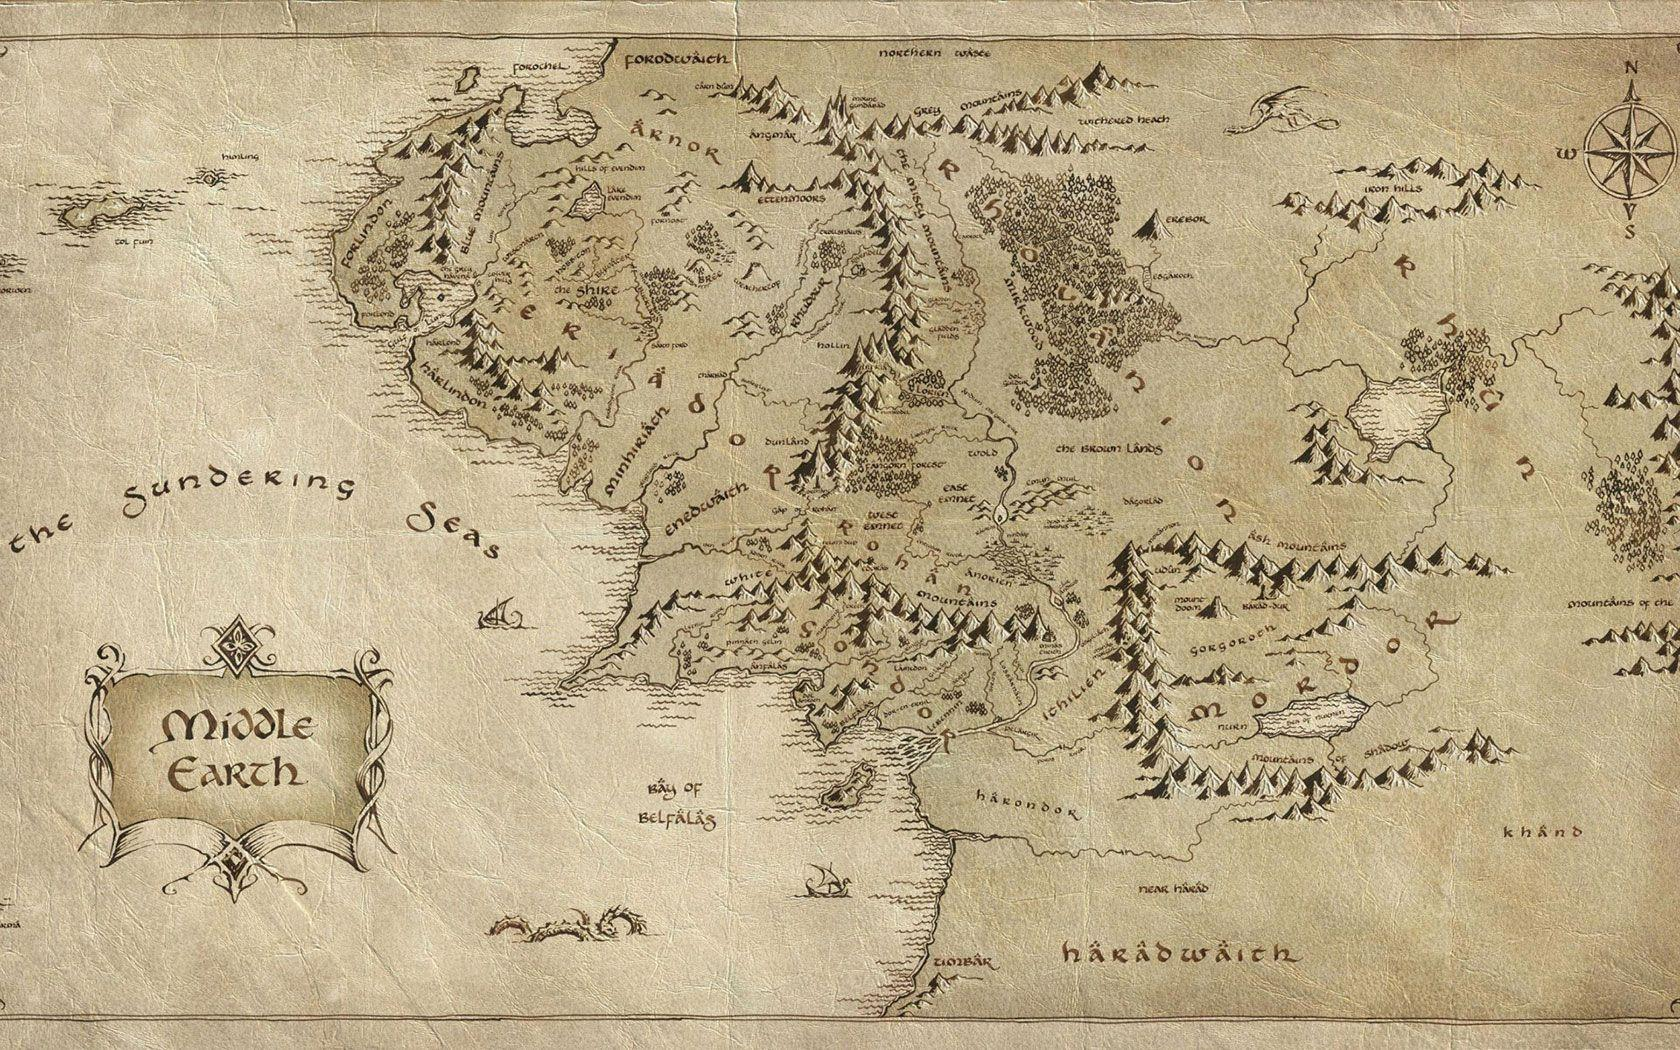 Lord of The Rings Map - HD Desktop Wallpaper | HD Wallpapers Source